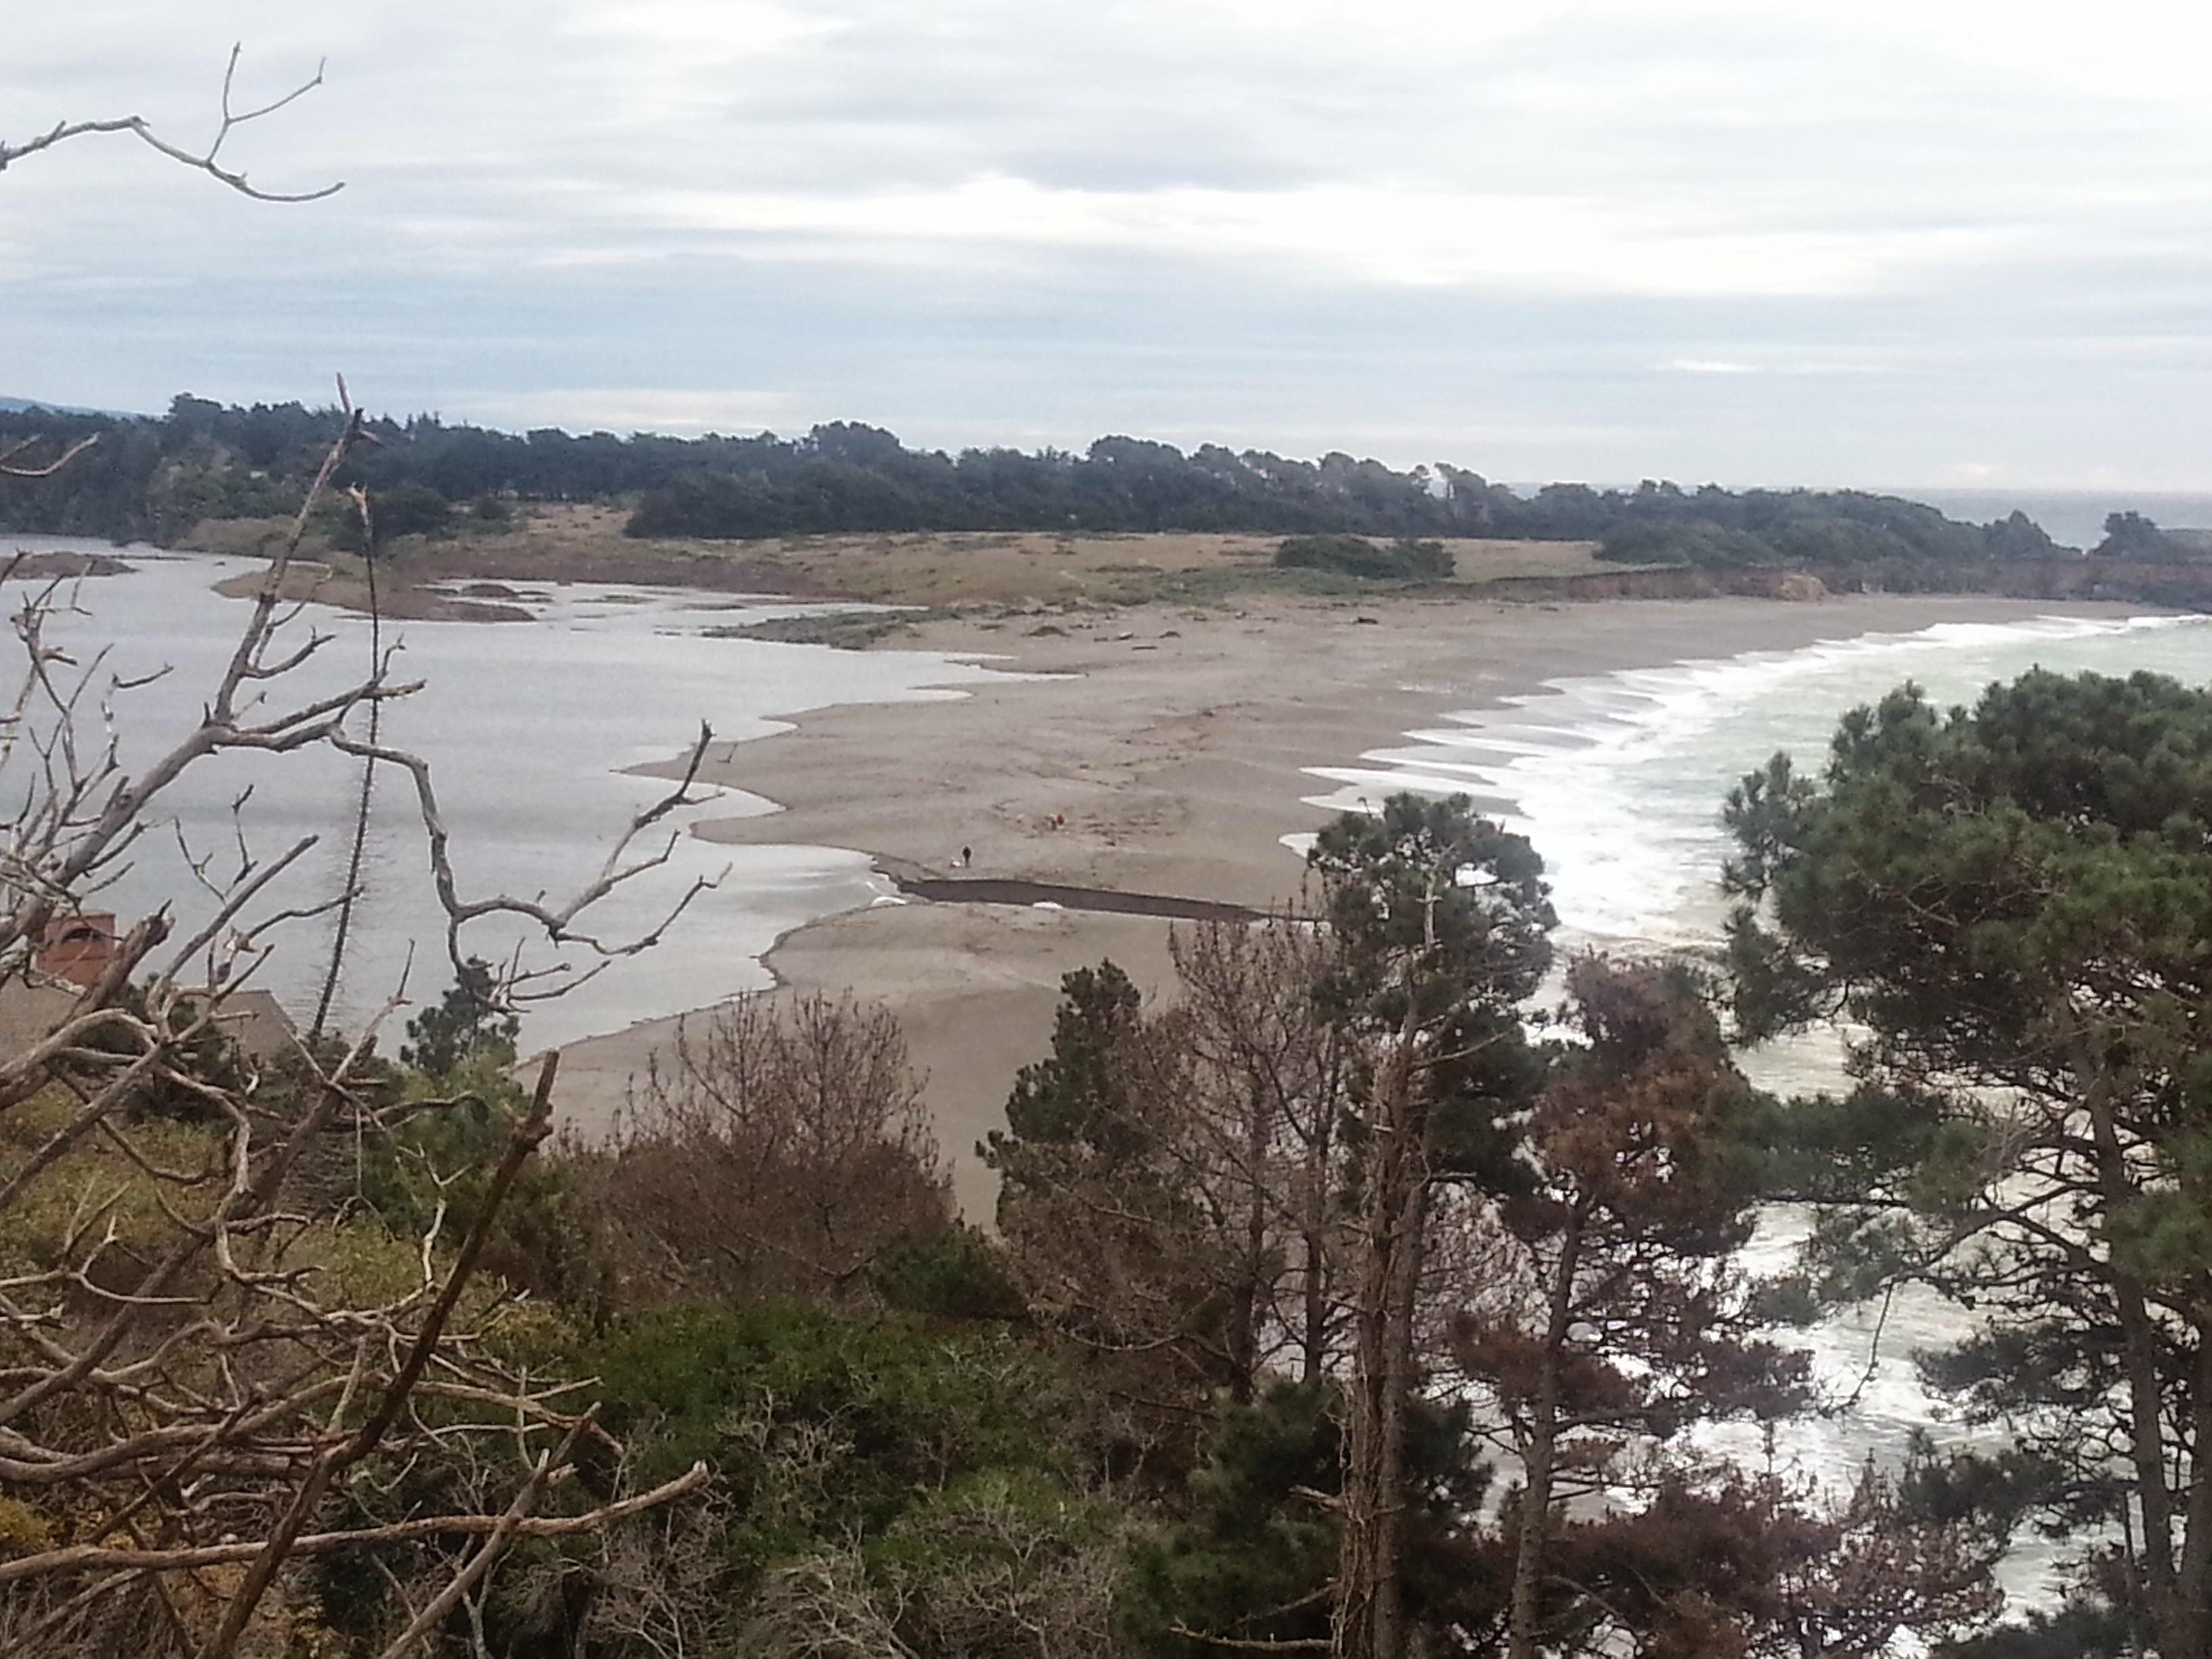 The Gualala River estuary sand bar broke open on 11/30/2014 for the first time during this 'water year.'